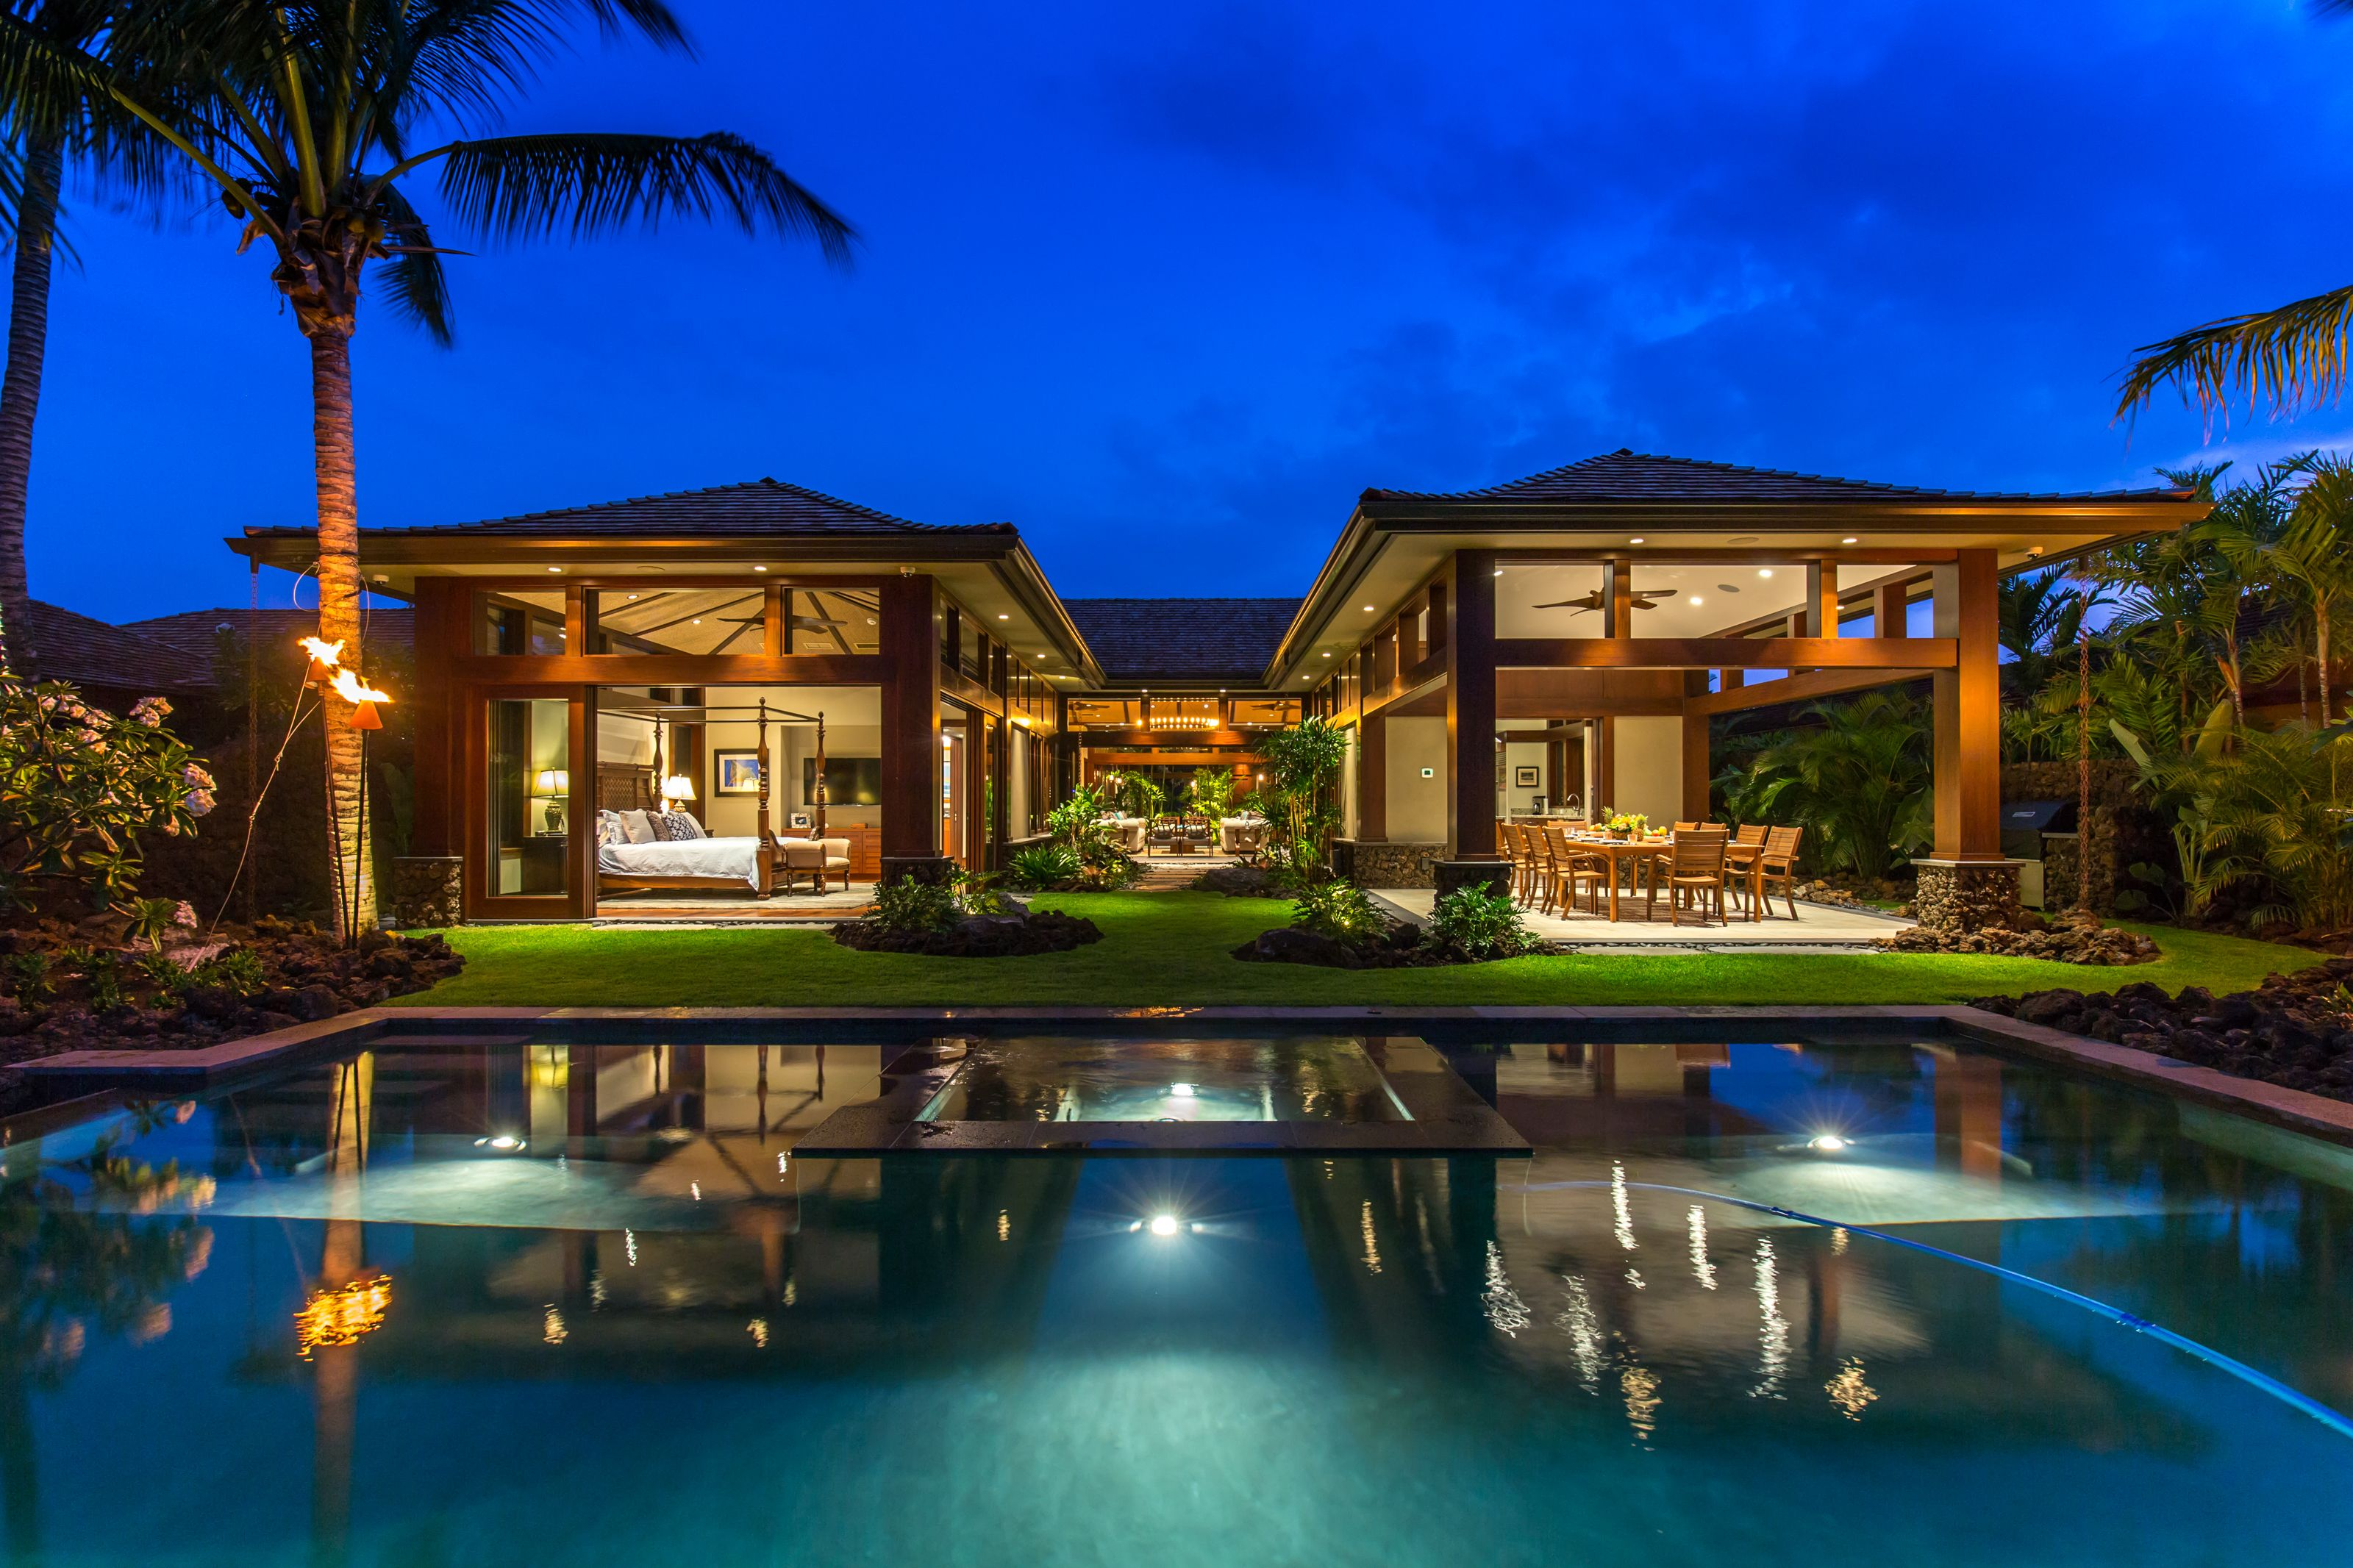 Luxurious 5 bed/5 bath private residence at Hualalai